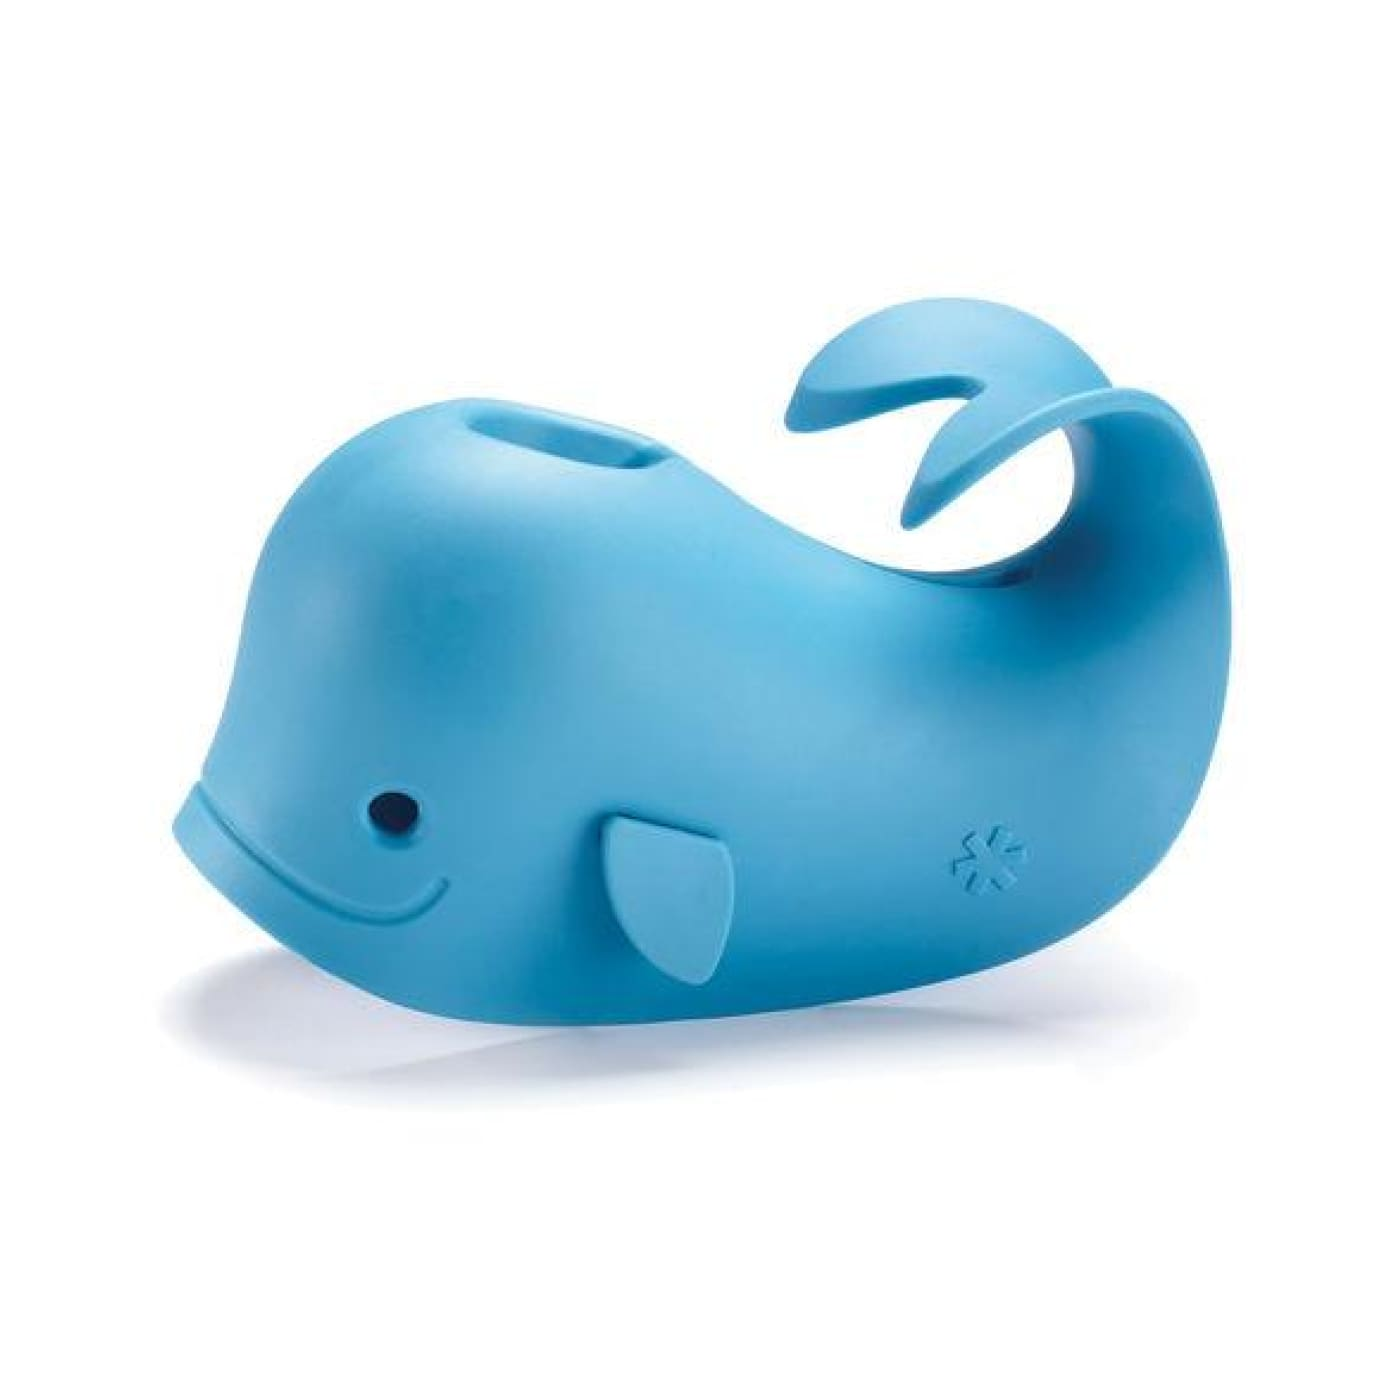 Skip Hop Moby Bath Spout Cover - Blue - BATHTIME & CHANGING - BATH TOYS/AIDS